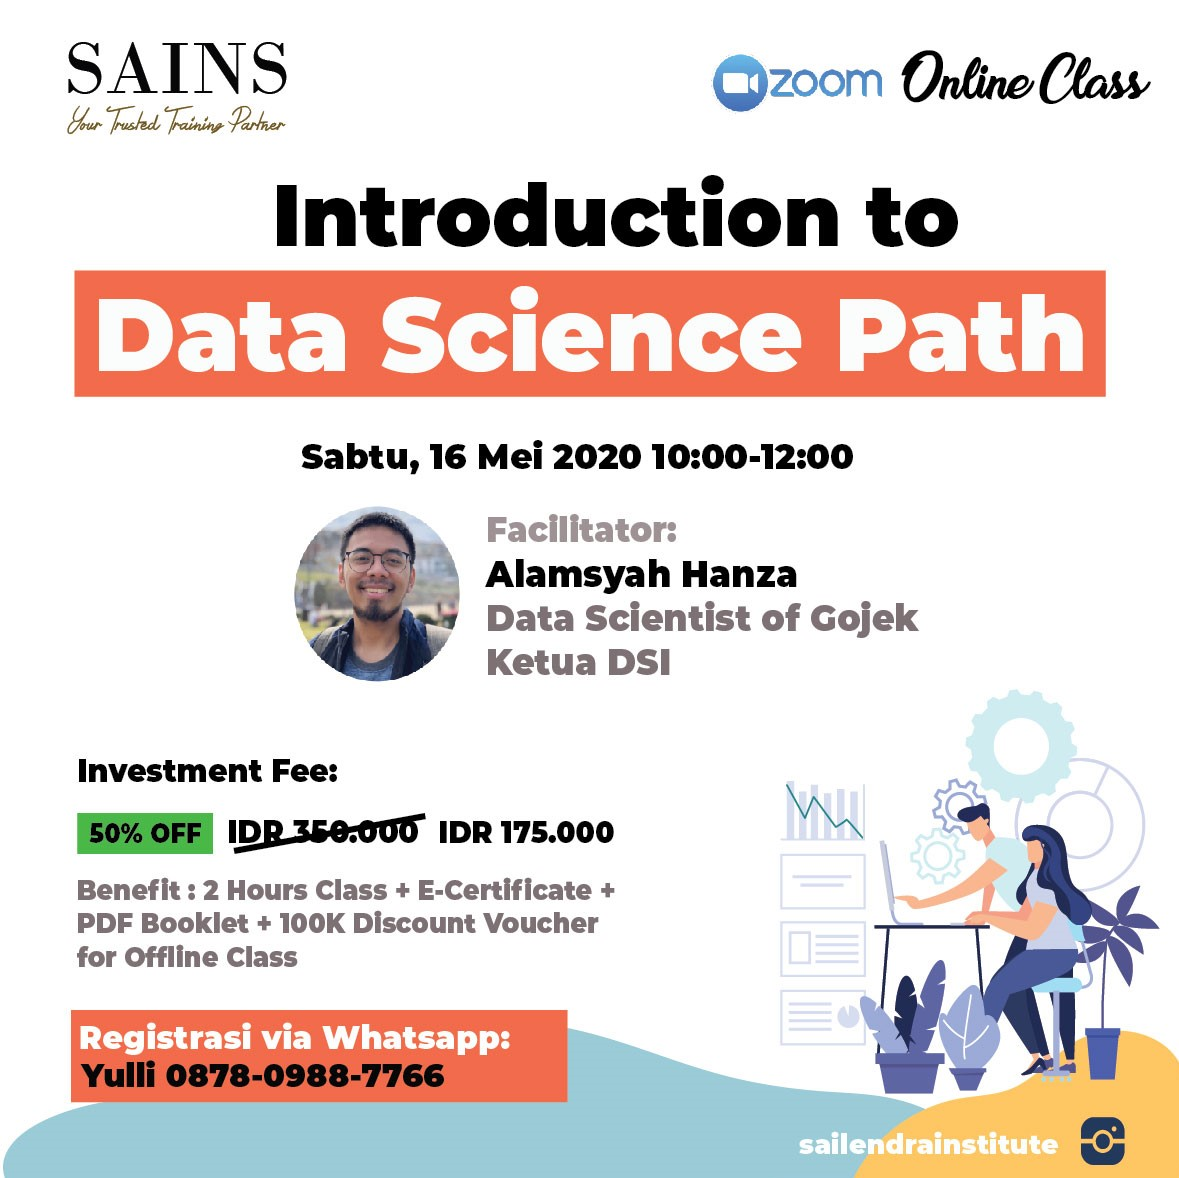 Online Class Introduction To Data Science Path